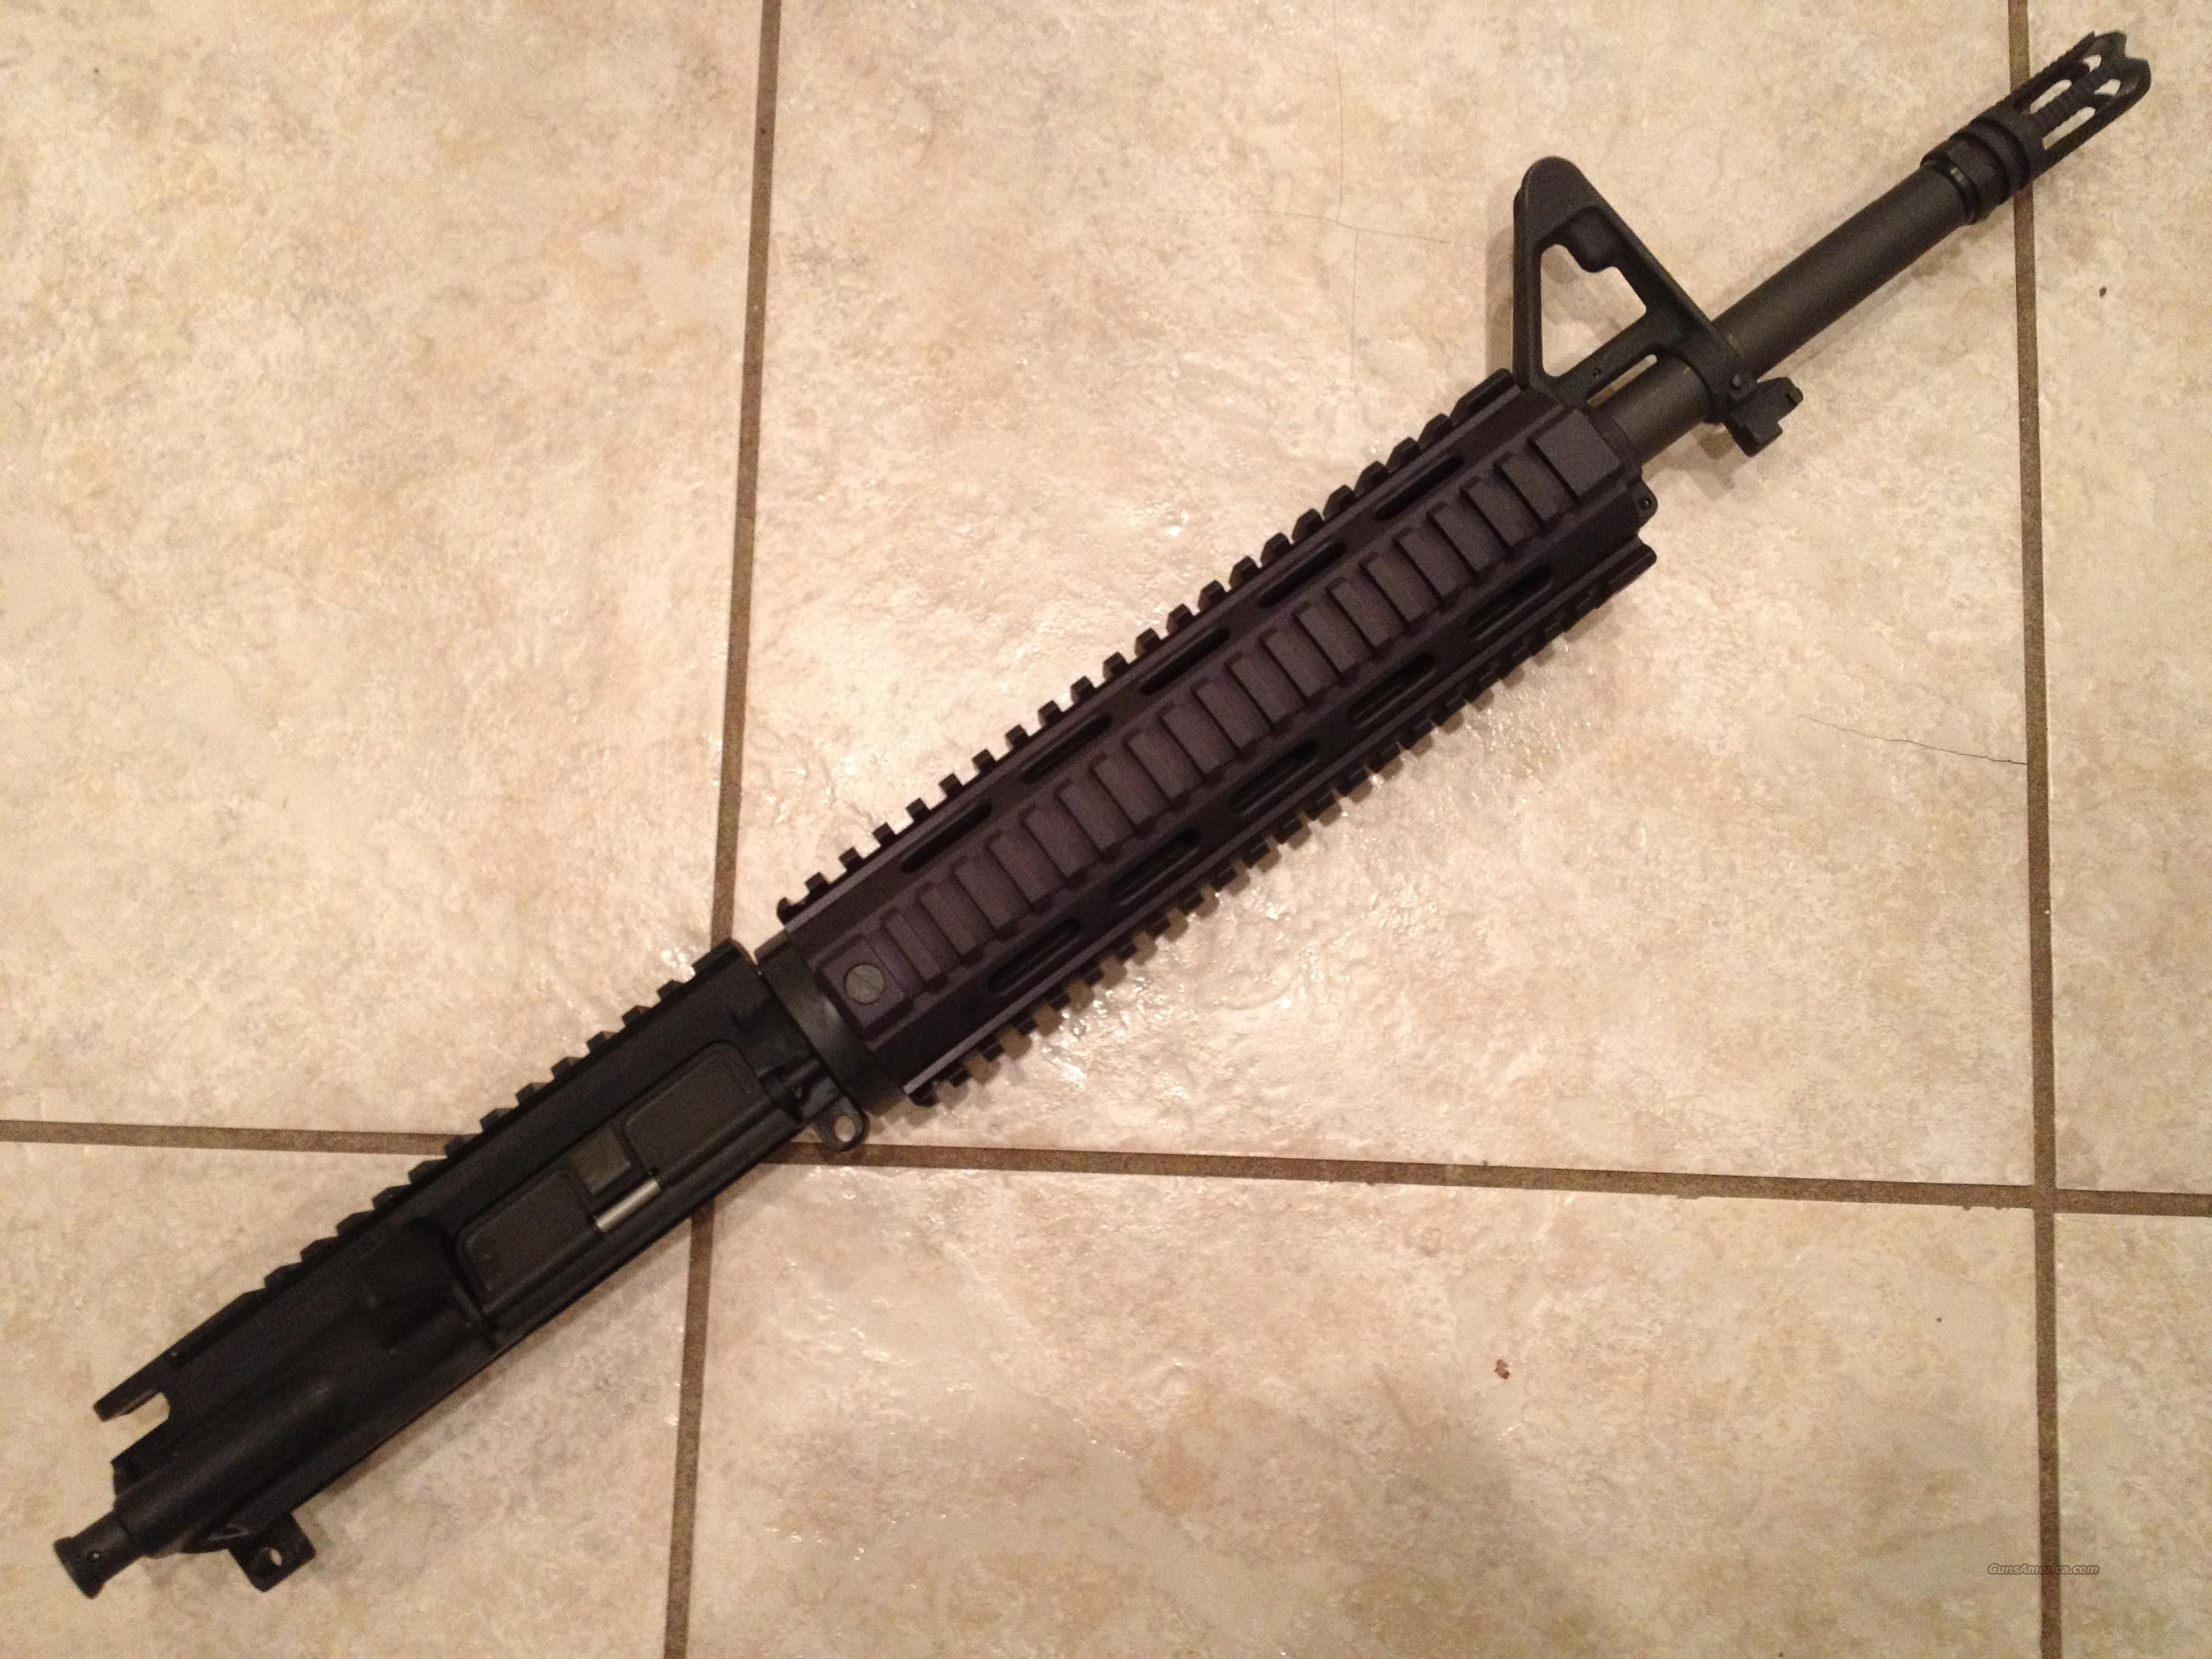 "14.5"" Mid-length M4/AR-15 Upper Receiver  Guns > Rifles > AR-15 Rifles - Small Manufacturers > Upper Only"